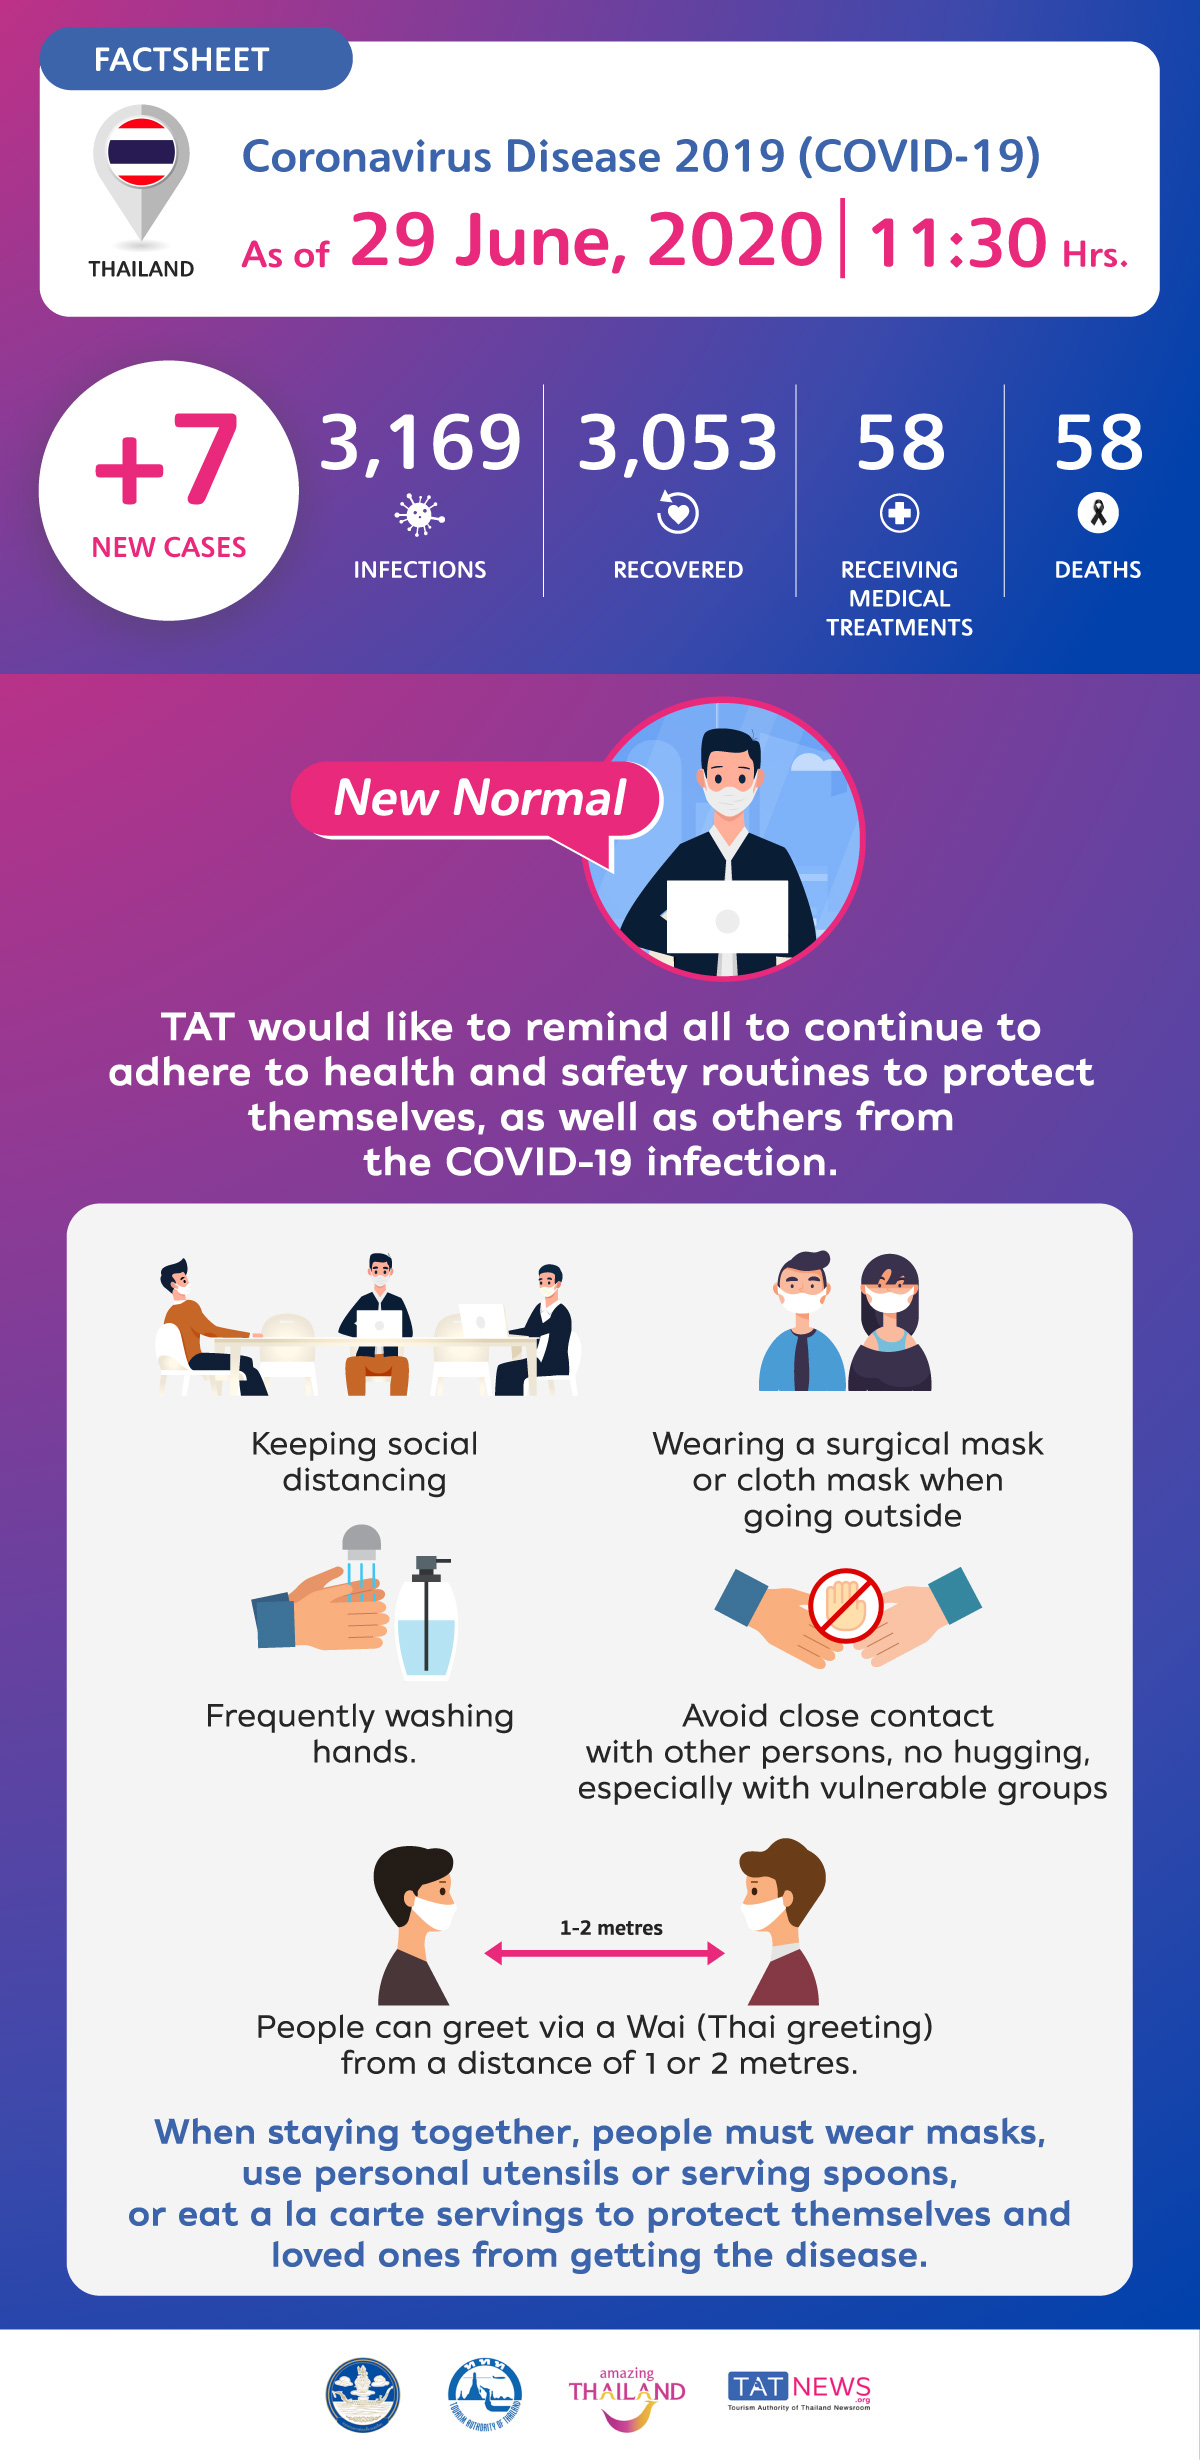 Coronavirus Disease 2019 (COVID-19) situation in Thailand as of 29 June 2020, 11.30 Hrs.